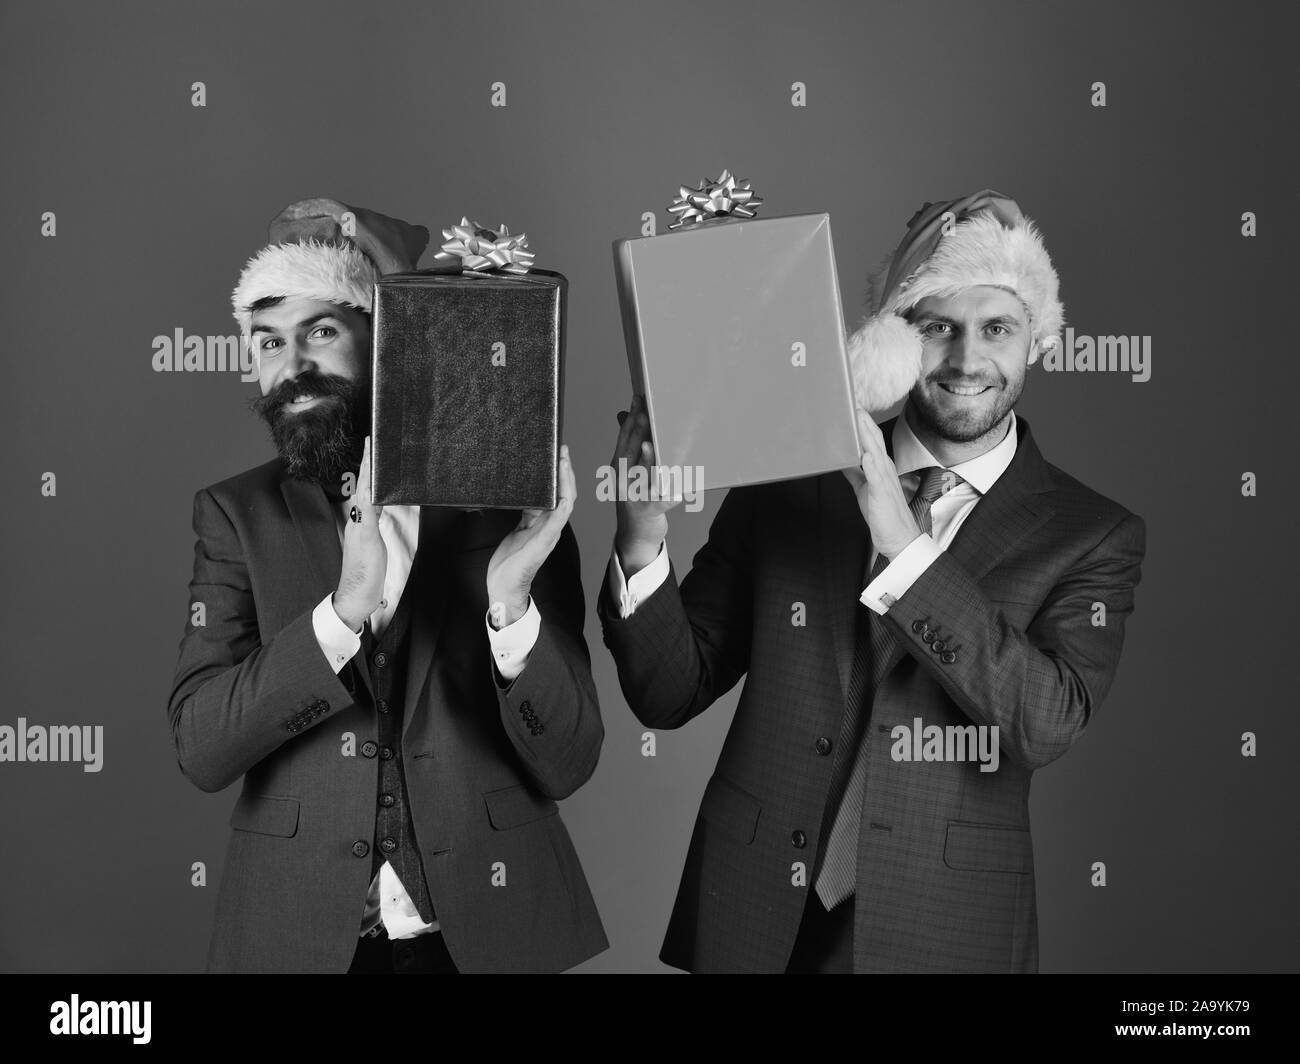 Businessmen With Cheerful Faces Hold Red And Blue Present Boxes Men In Smart Suits And Santa Hats On Blue Background Business And Celebration Concept Managers With Beards And Christmas Gifts Stock Photo